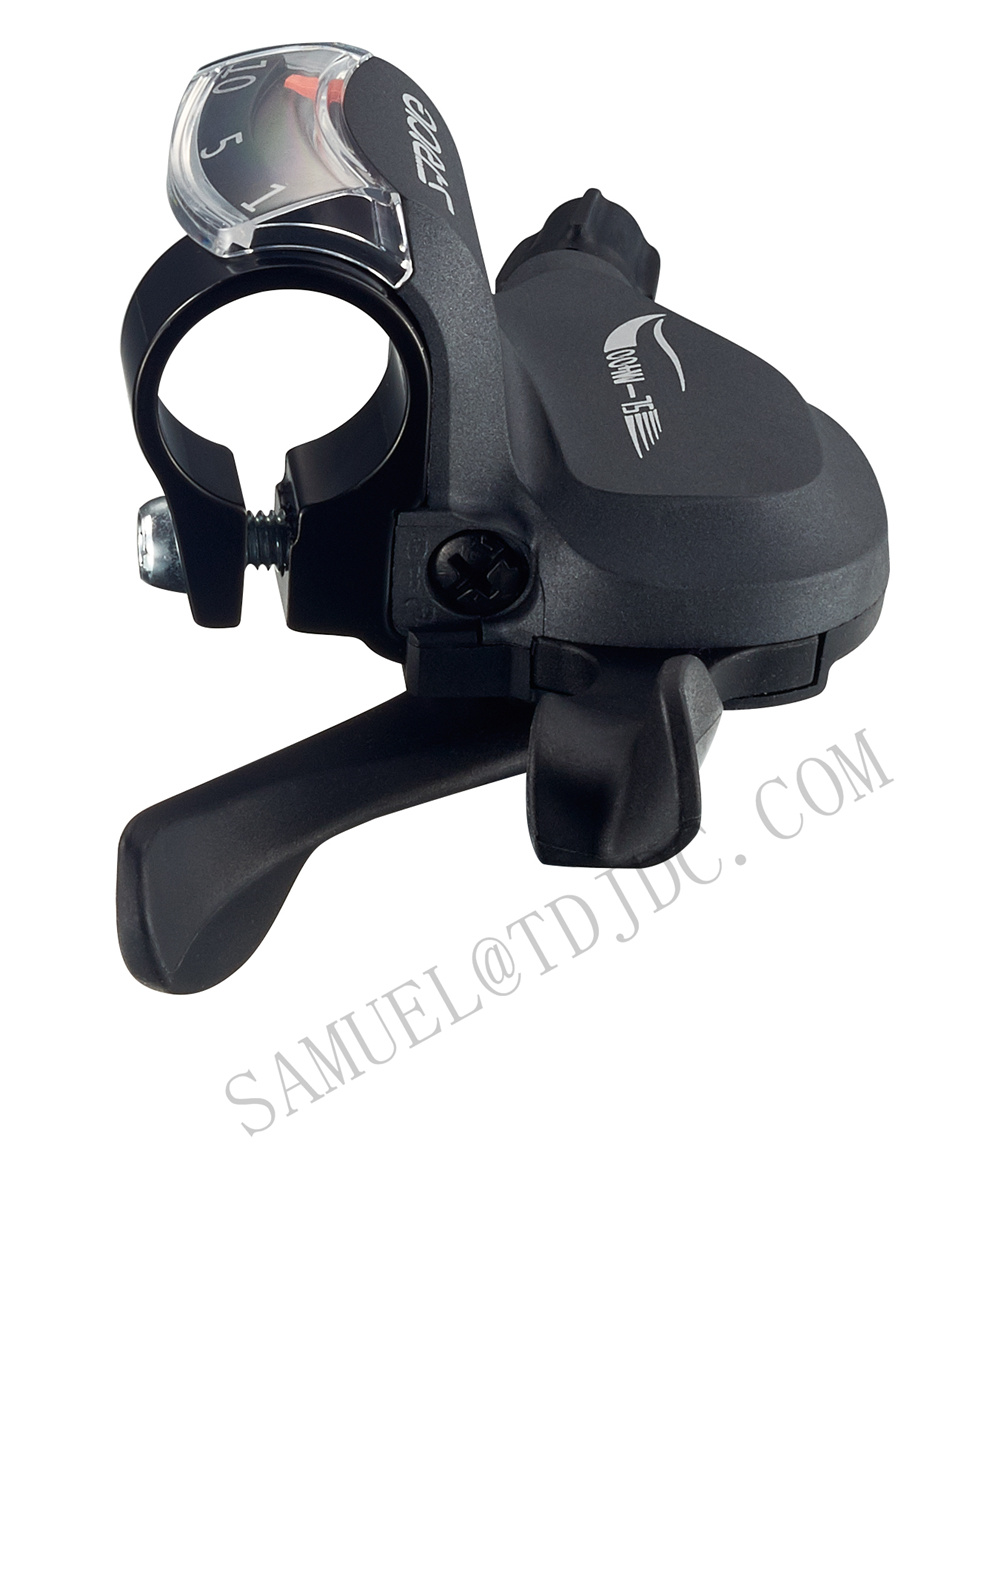 Cheap Price Bicycle Trigger 21 27 30 Speeds SL-M400 Chain MTB Bike Trigger Rear Derailleur Front Derailleur